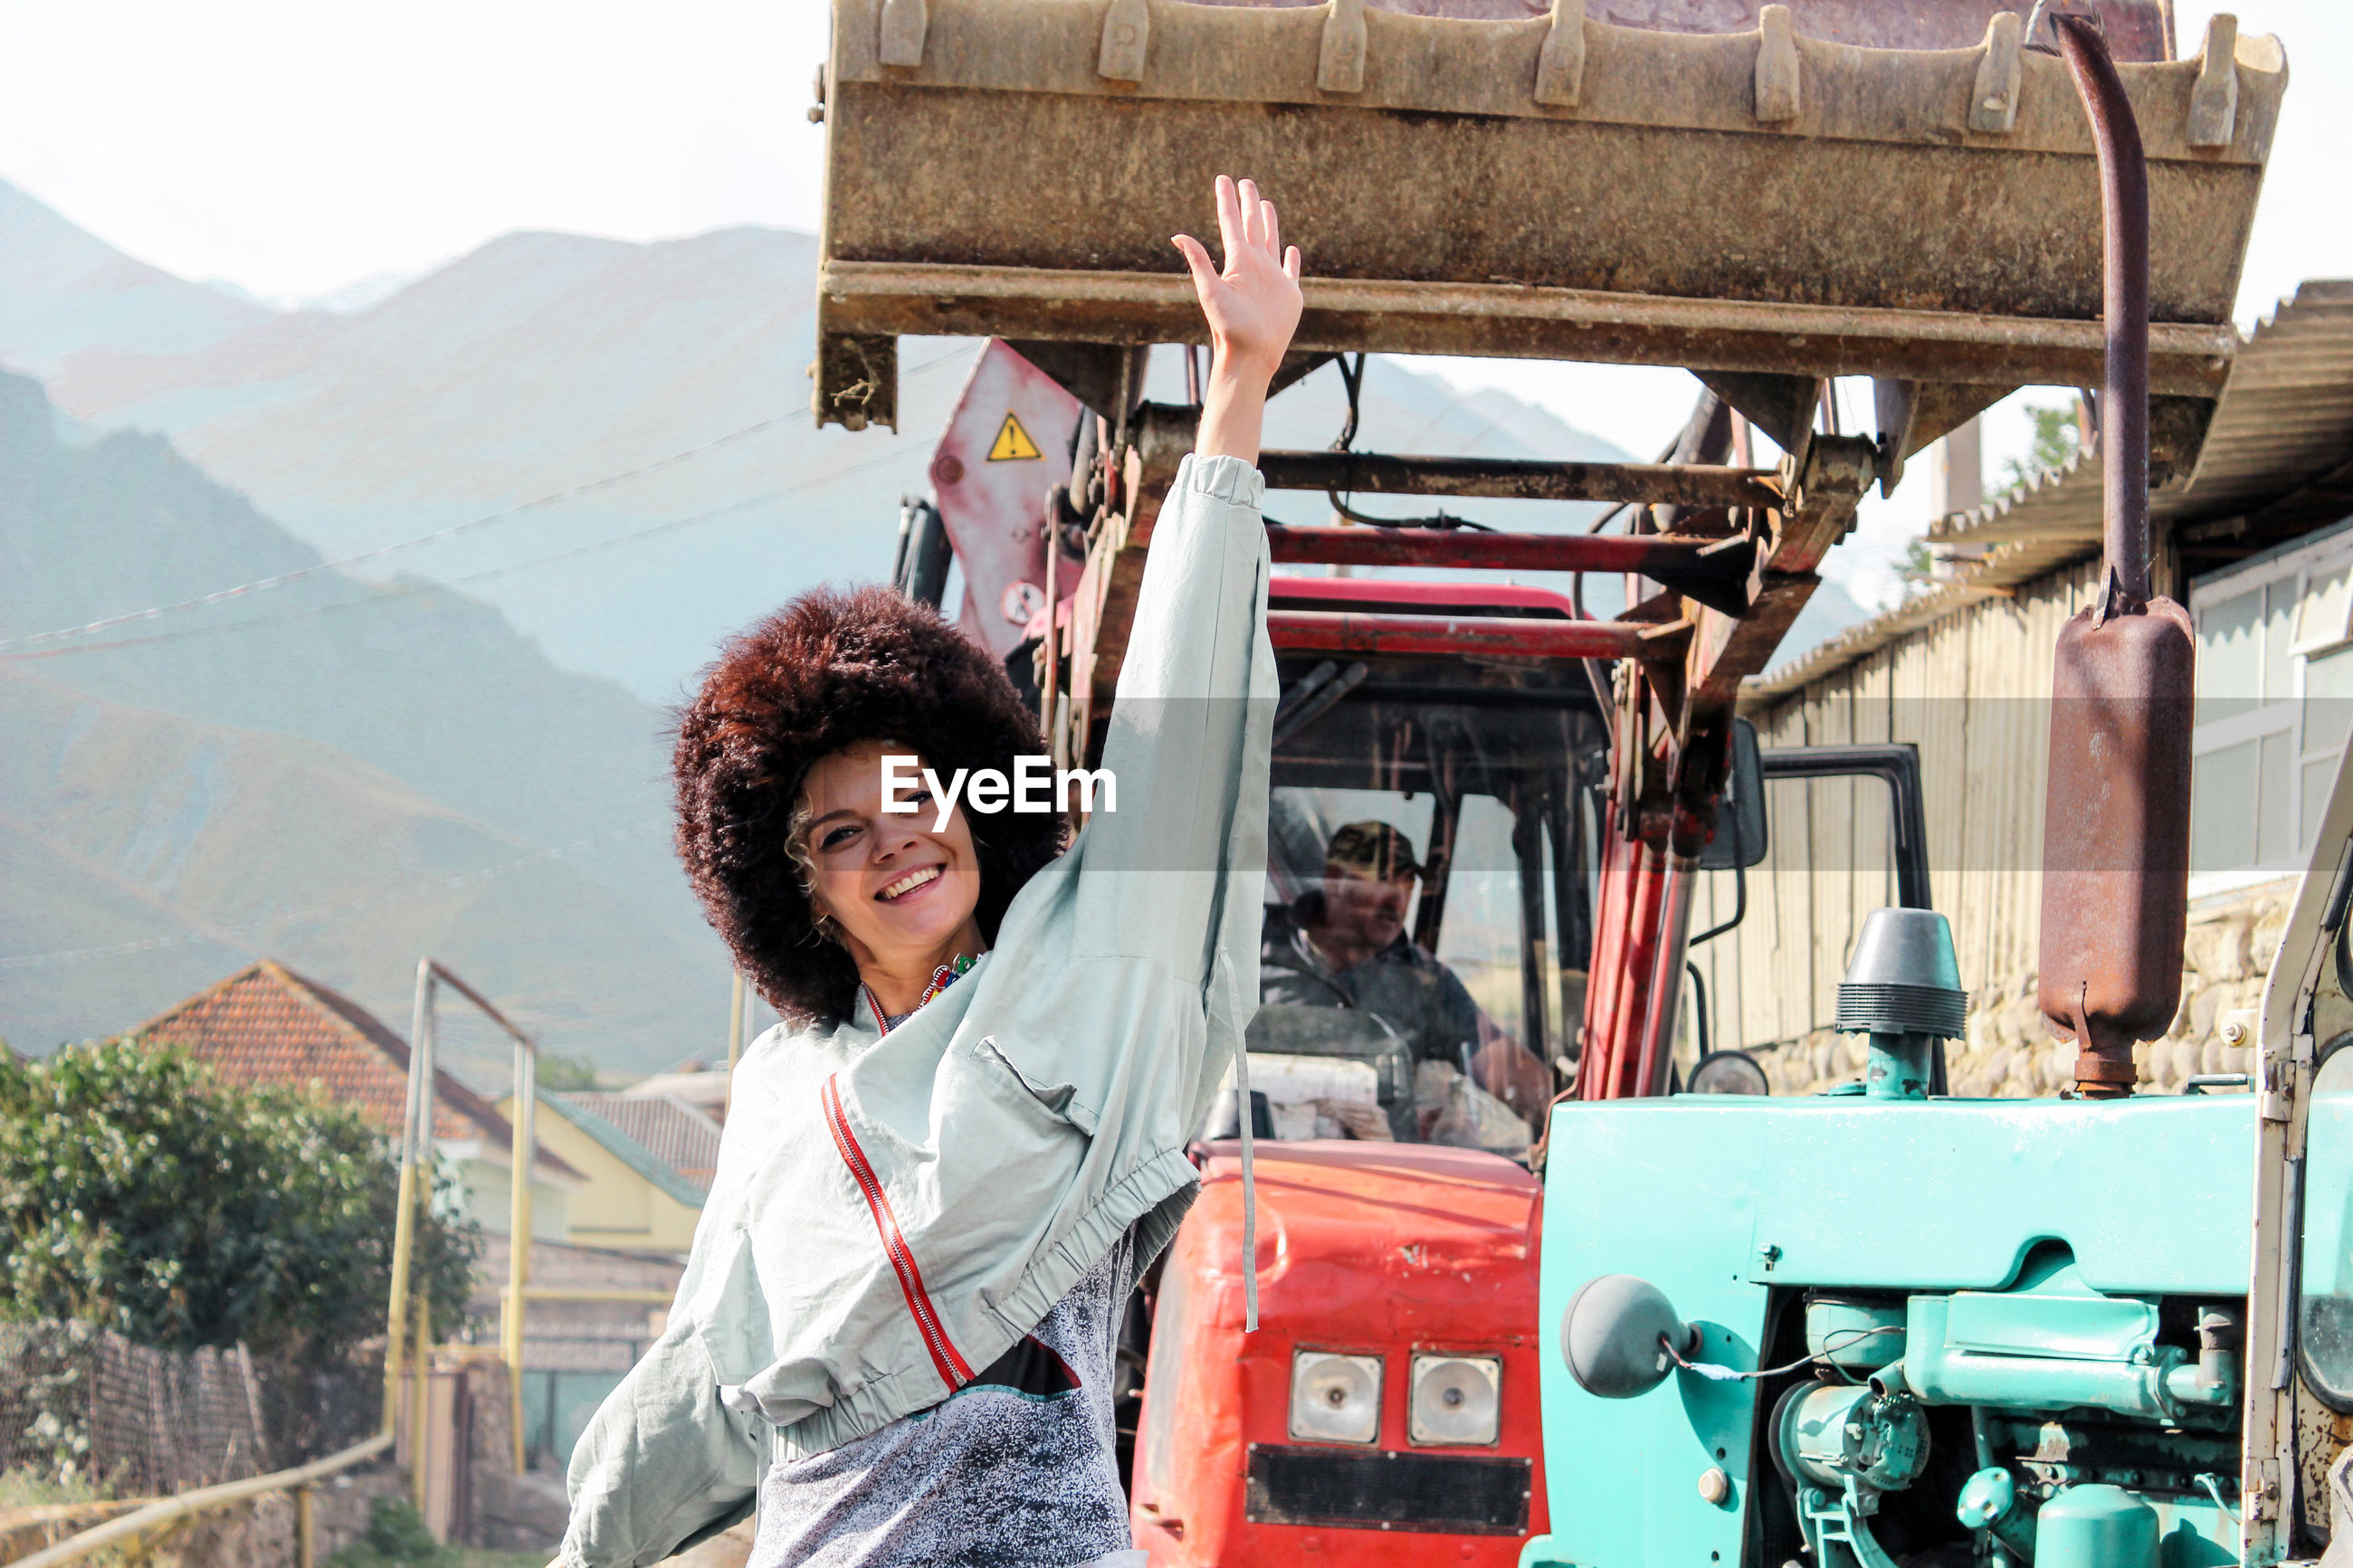 Portrait of smiling young woman with arm raised standing against earth mover